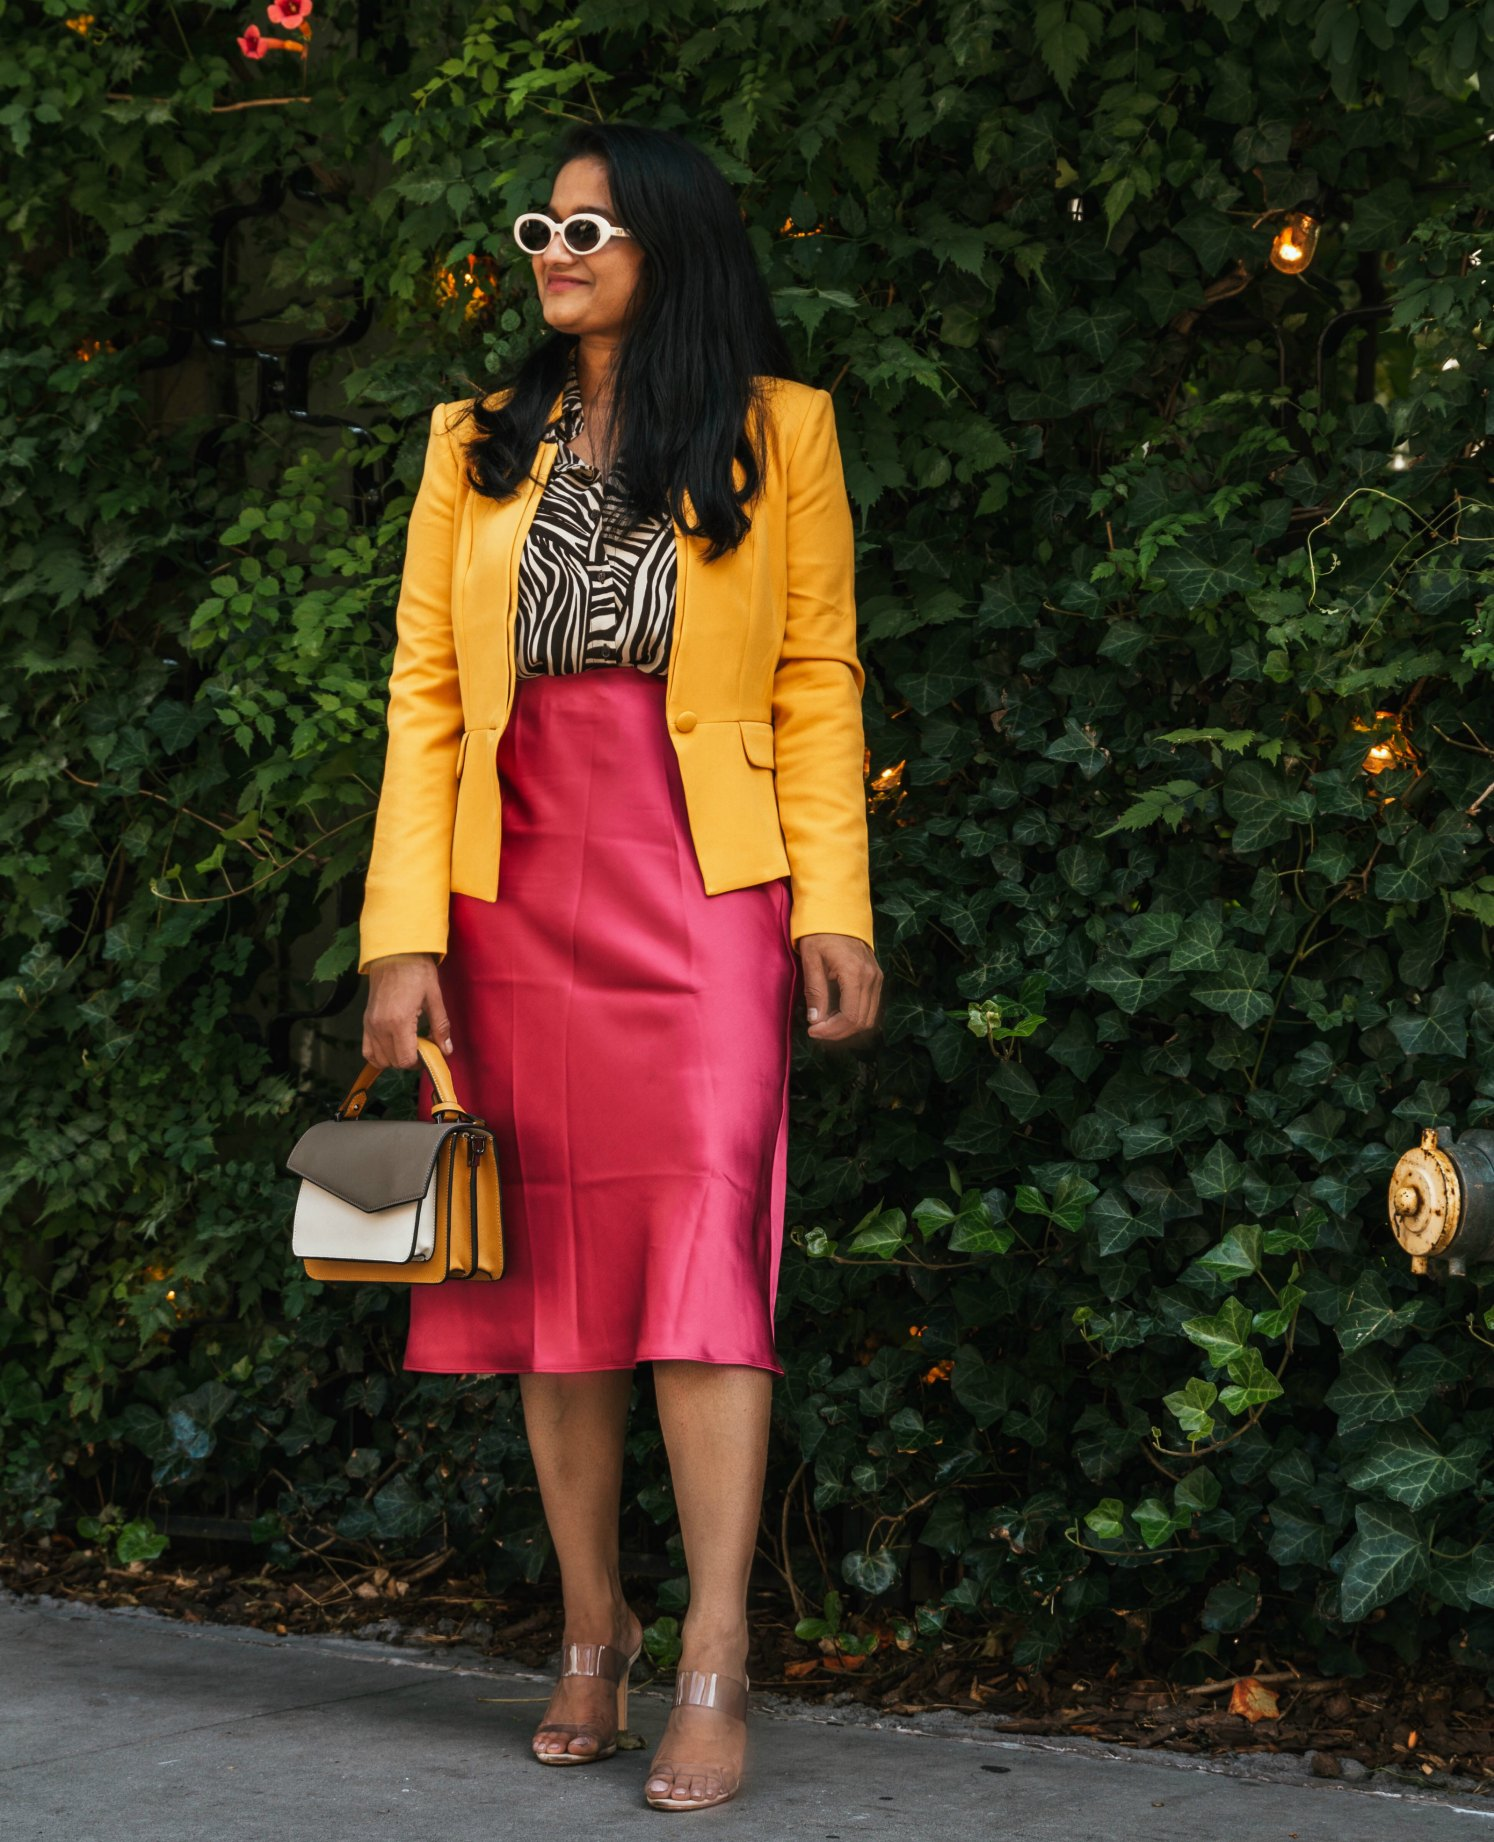 NYFW Recap all things mochi- wearing club monaco Trycia Satin Skirt, Botkier Cobble Hill Color-Block Crossbody, Schutz clear heels, WHBM yellow blazer